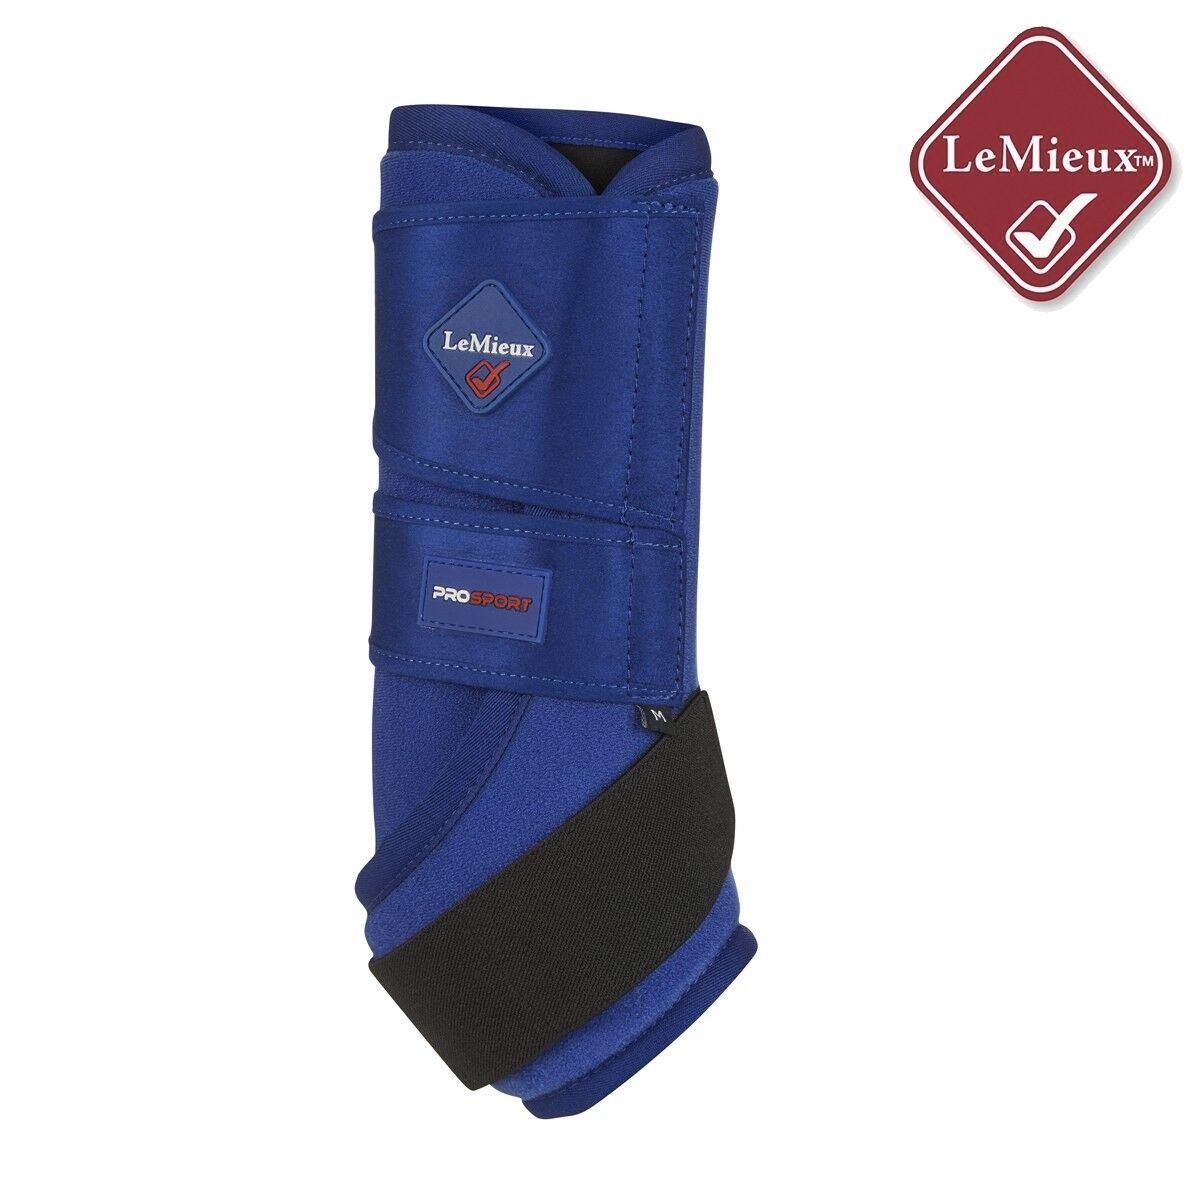 LeMieux Ultra Support Stiefel - Benetton Blau - Free UK Shipping